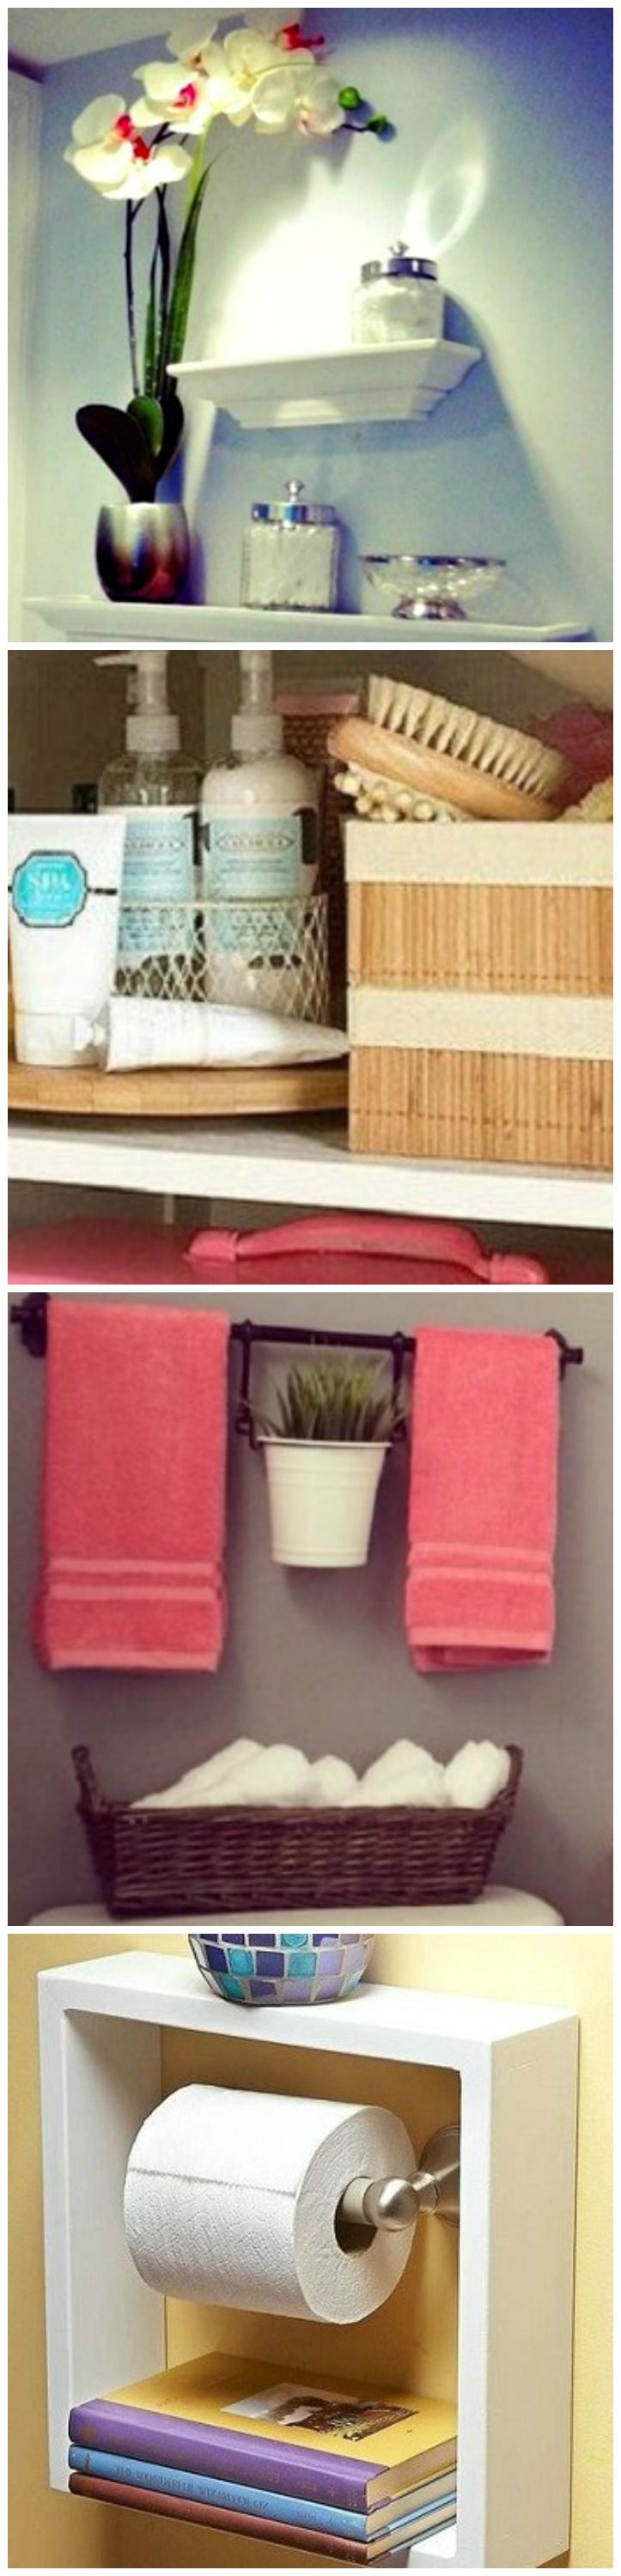 565 best images about decorating on pinterest